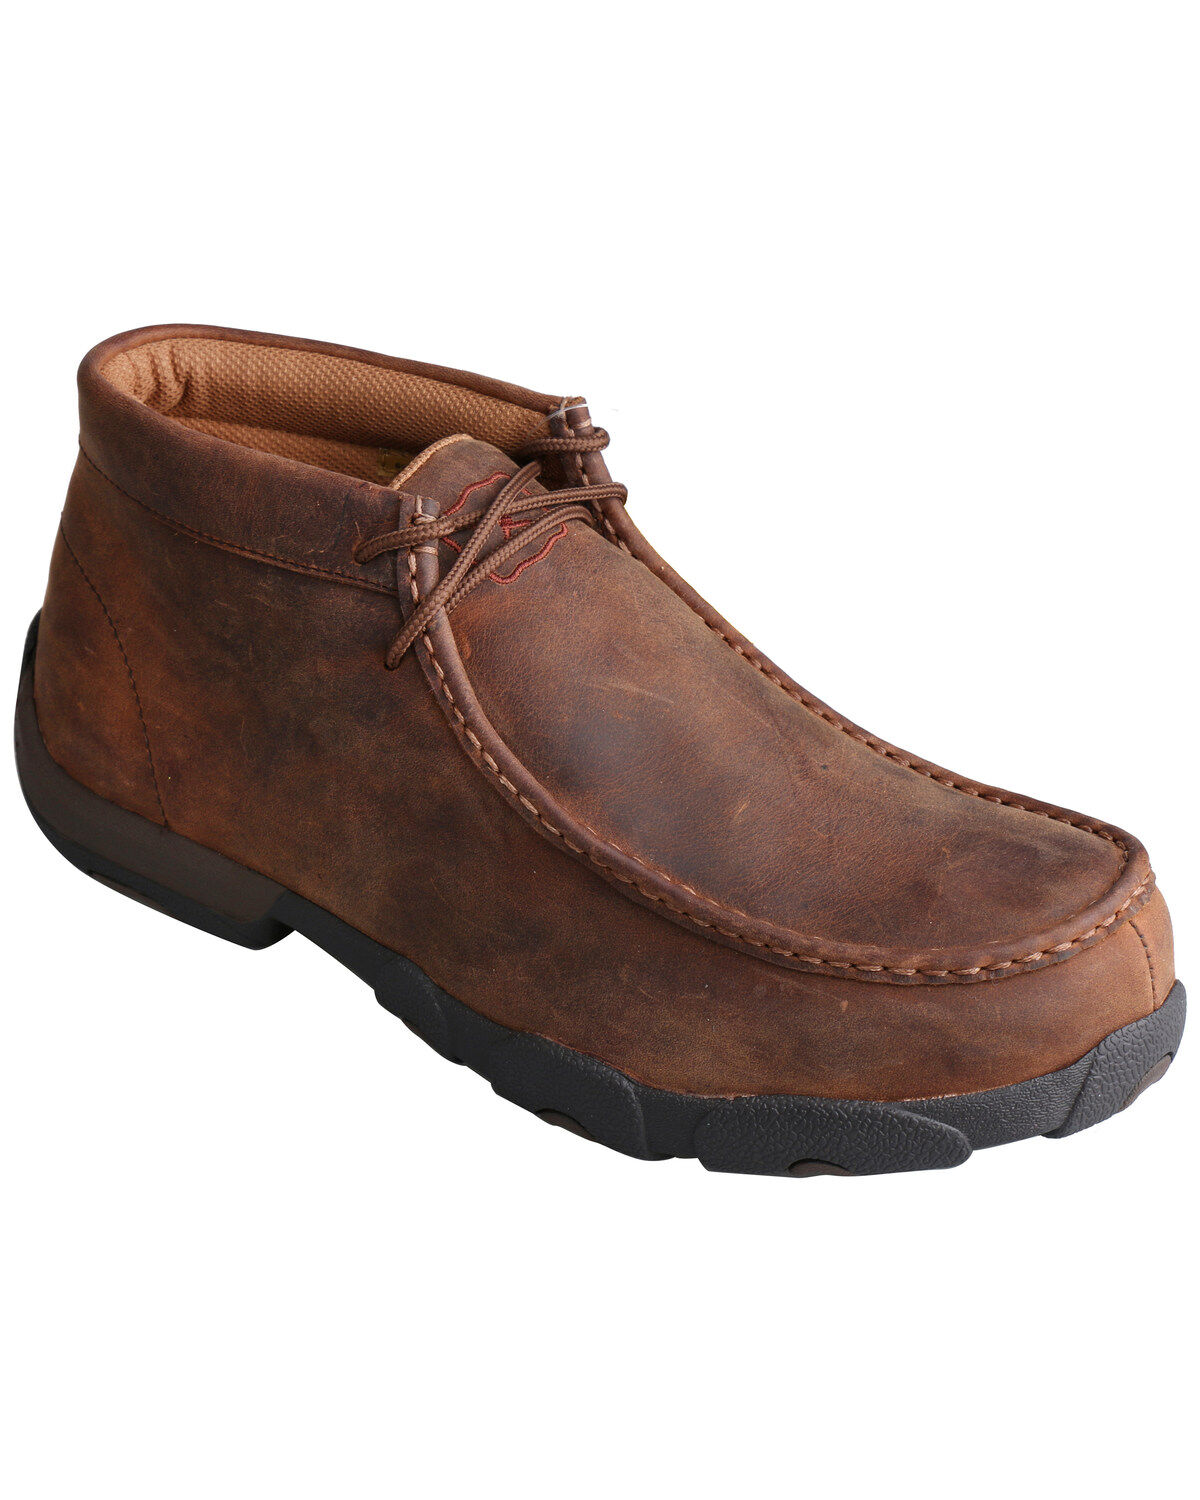 Work Shoes - Boot Barn